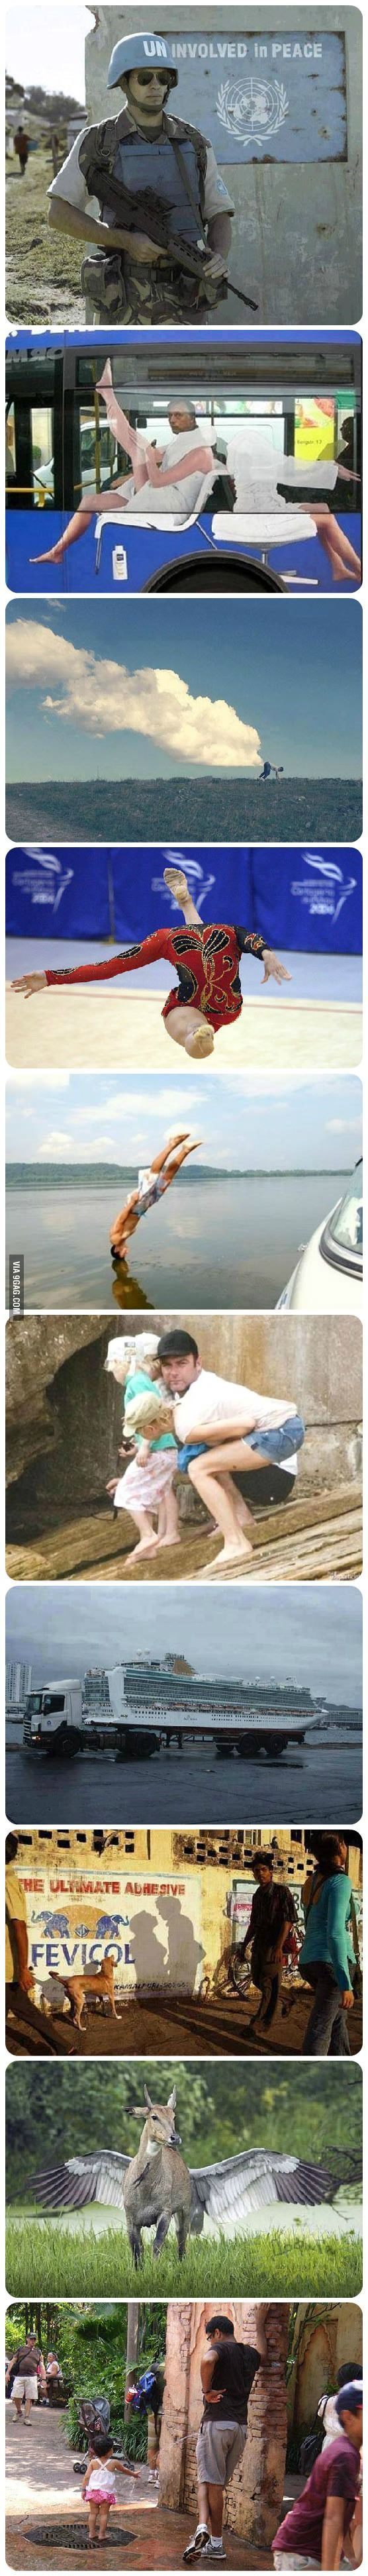 Perfectly Timed Photos Read More Funny:http://wdb.es/?utm_campaign=wdb.esutm_medium=pinterestutm_source=pinterst-descriptionutm_content=utm_term=